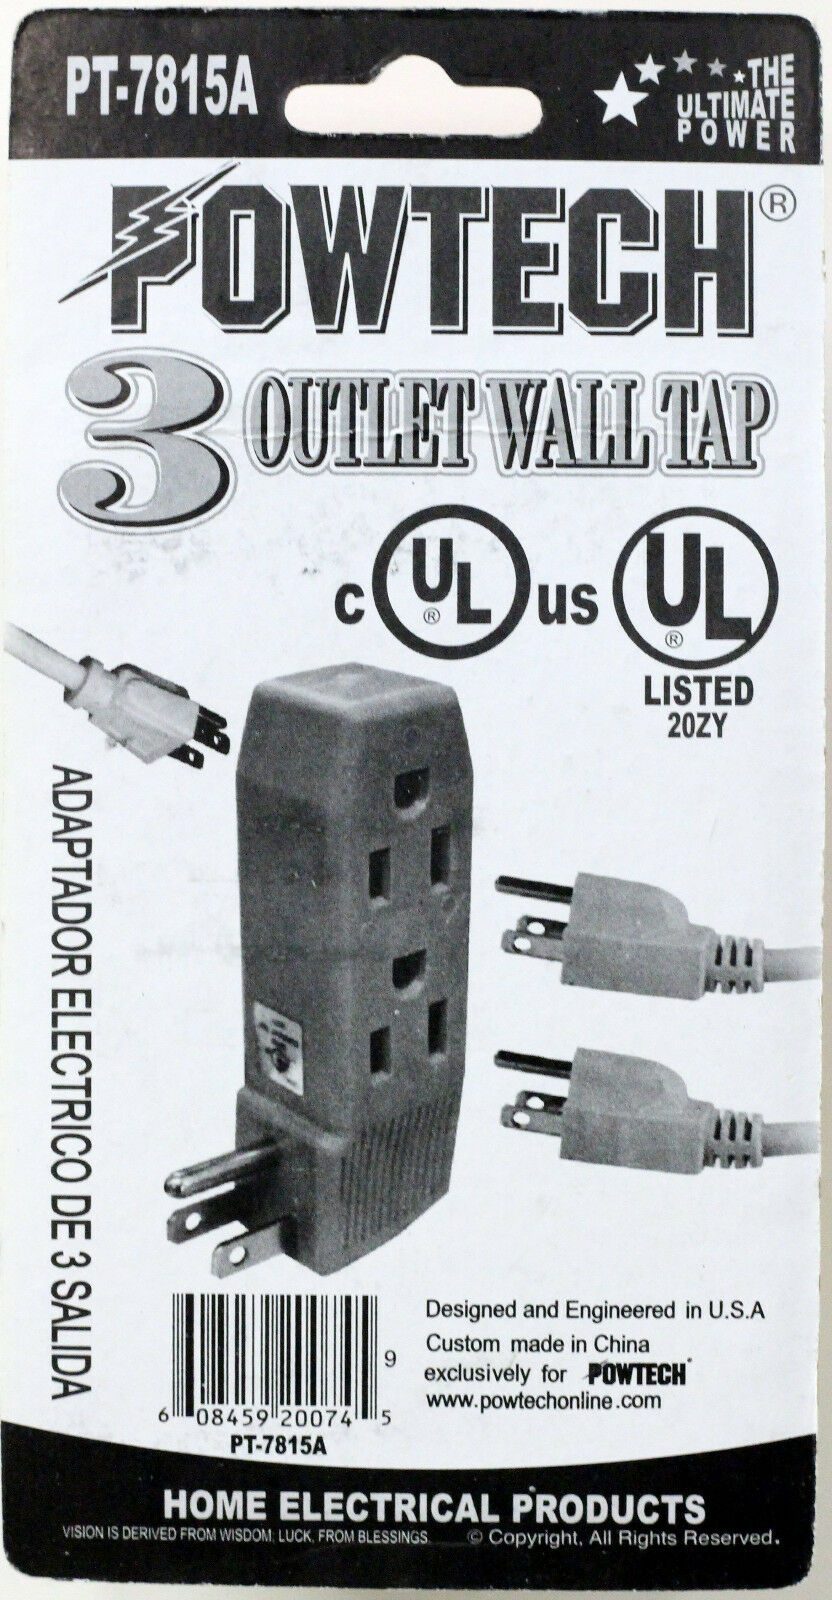 Colorful 3 Way Electrical Outlet Vignette - Electrical Diagram Ideas ...